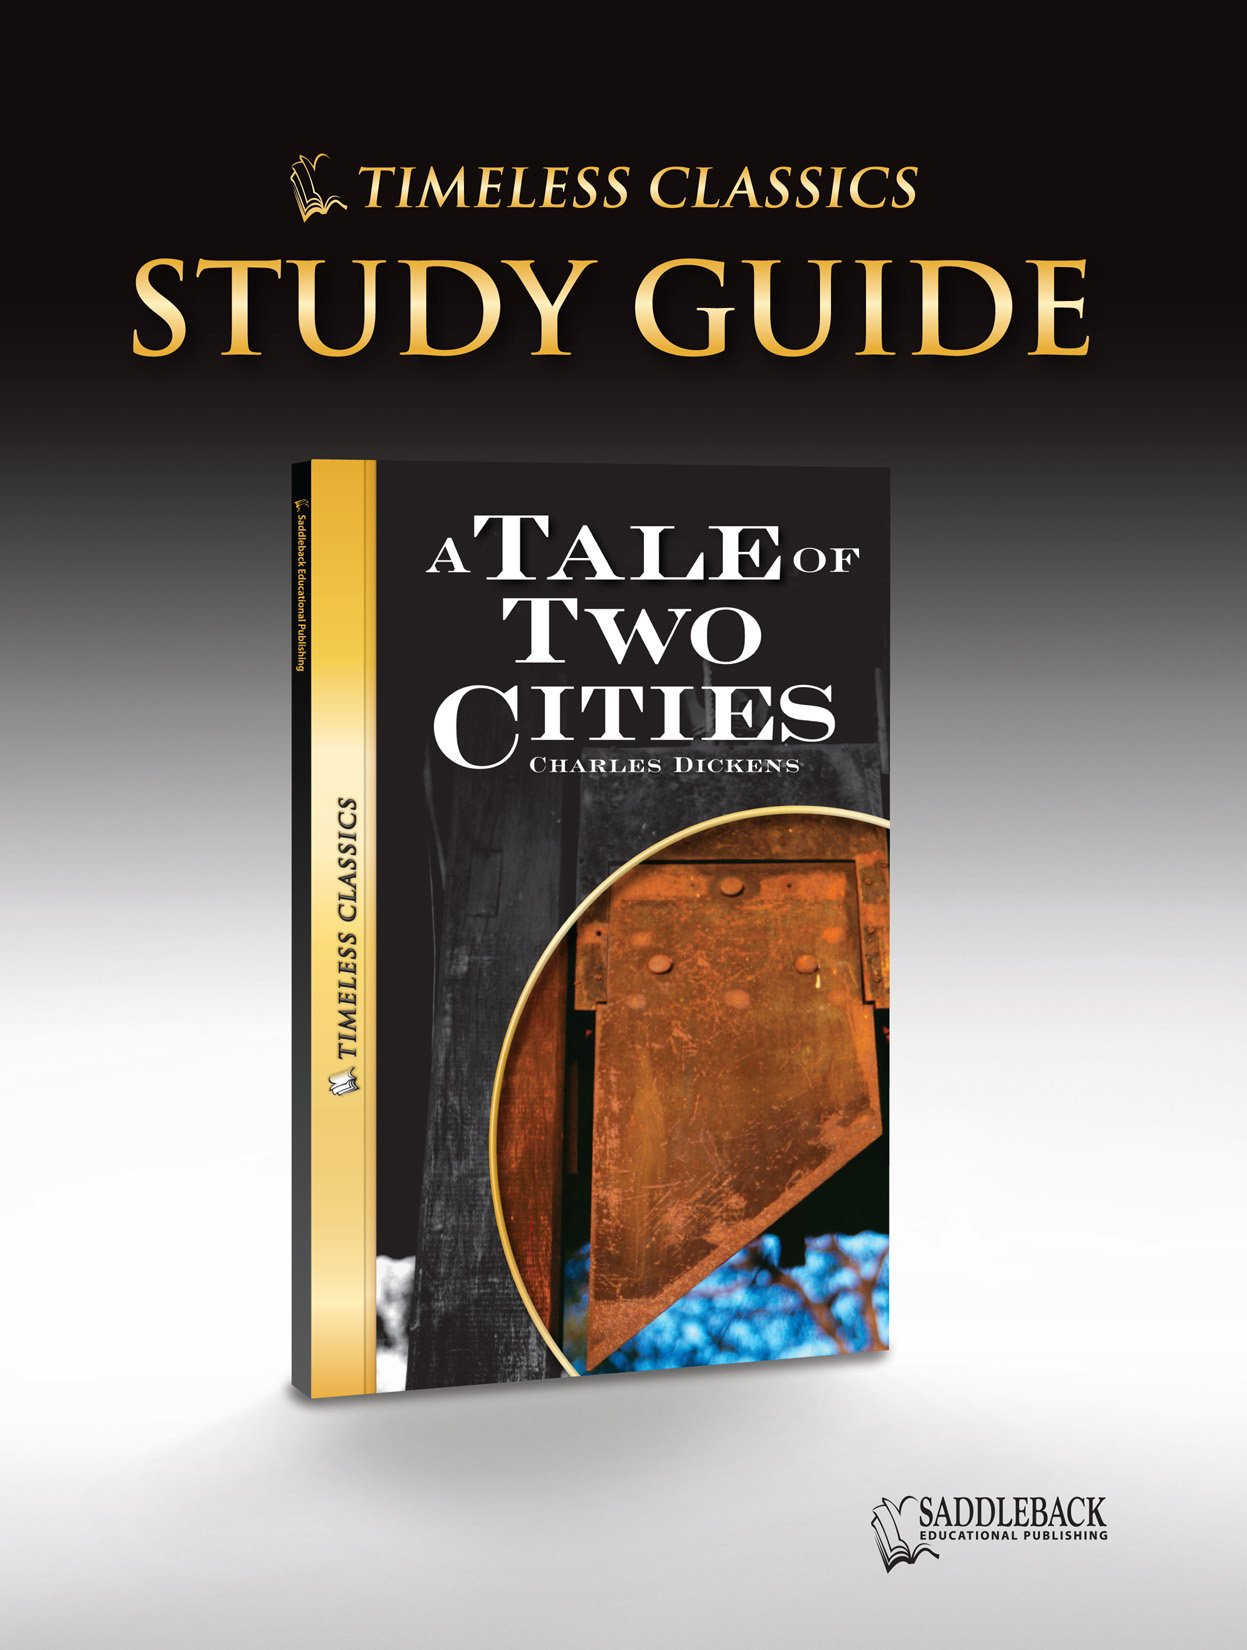 A Tale of Two Cities Study Guide (Timeless) (Timeless Classics) PDF